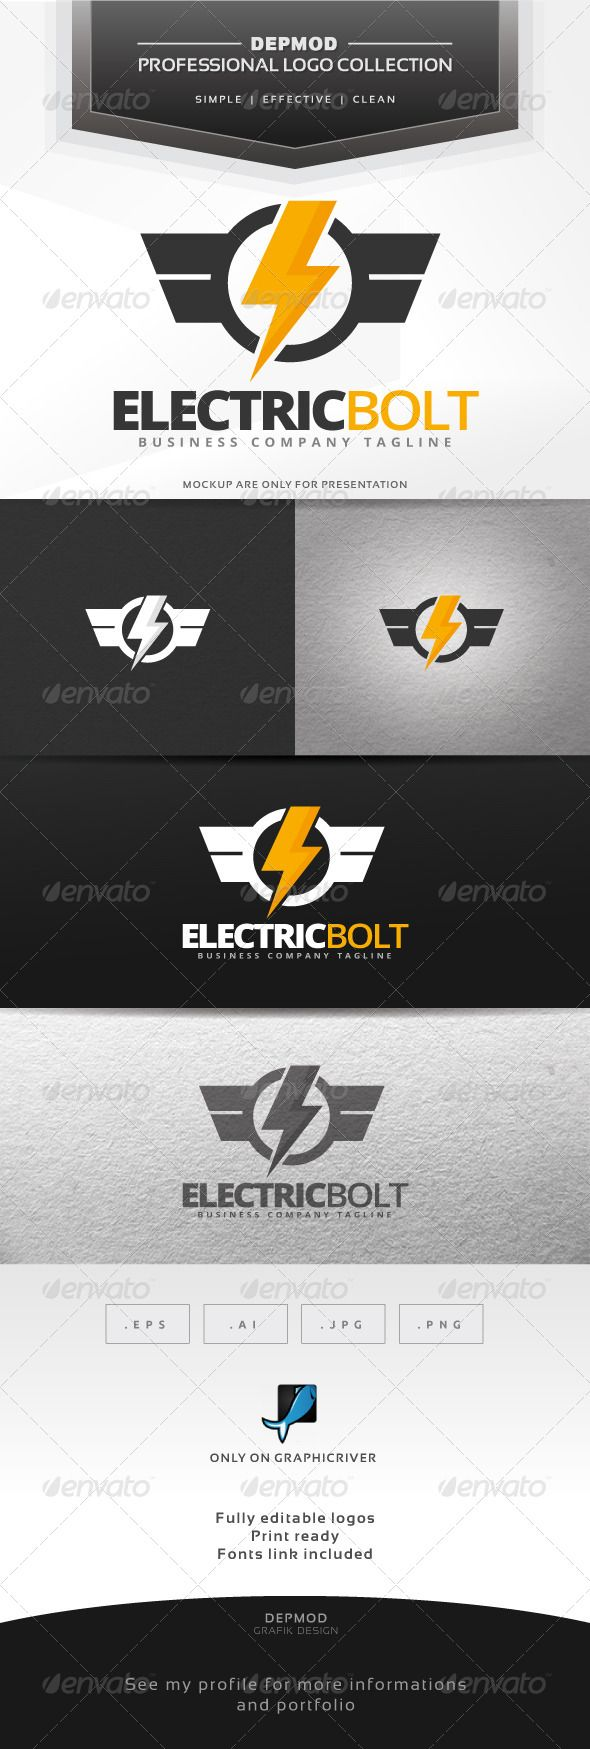 Electric Bolt Logo — Vector EPS #industry #thunder • Available here → https://graphicriver.net/item/electric-bolt-logo/7348110?ref=pxcr